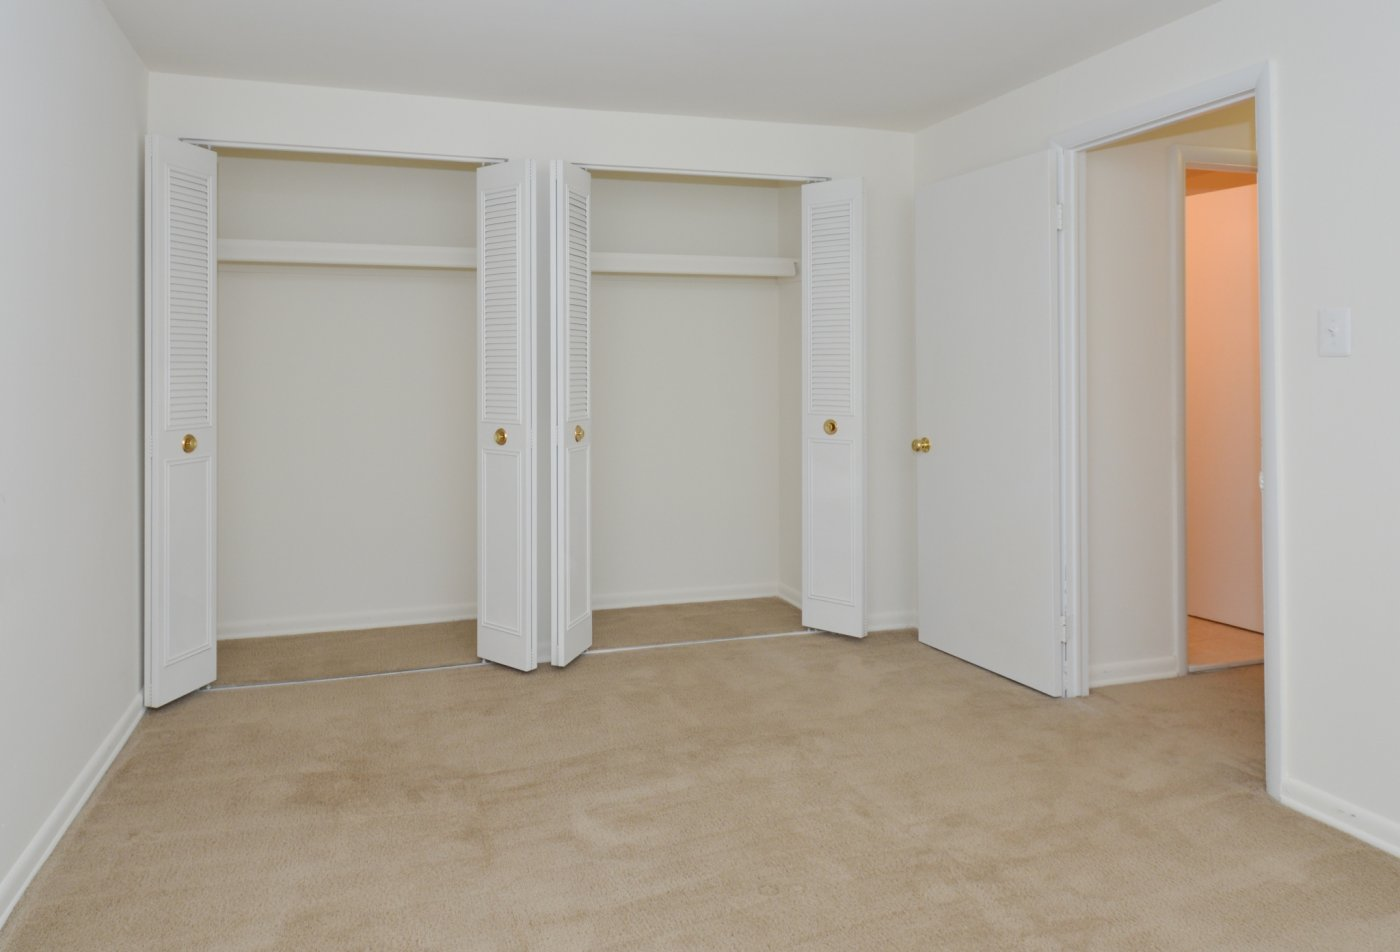 Spacious Closet | Apartments in Boothwyn, PA | Boothwyn Court Apartments